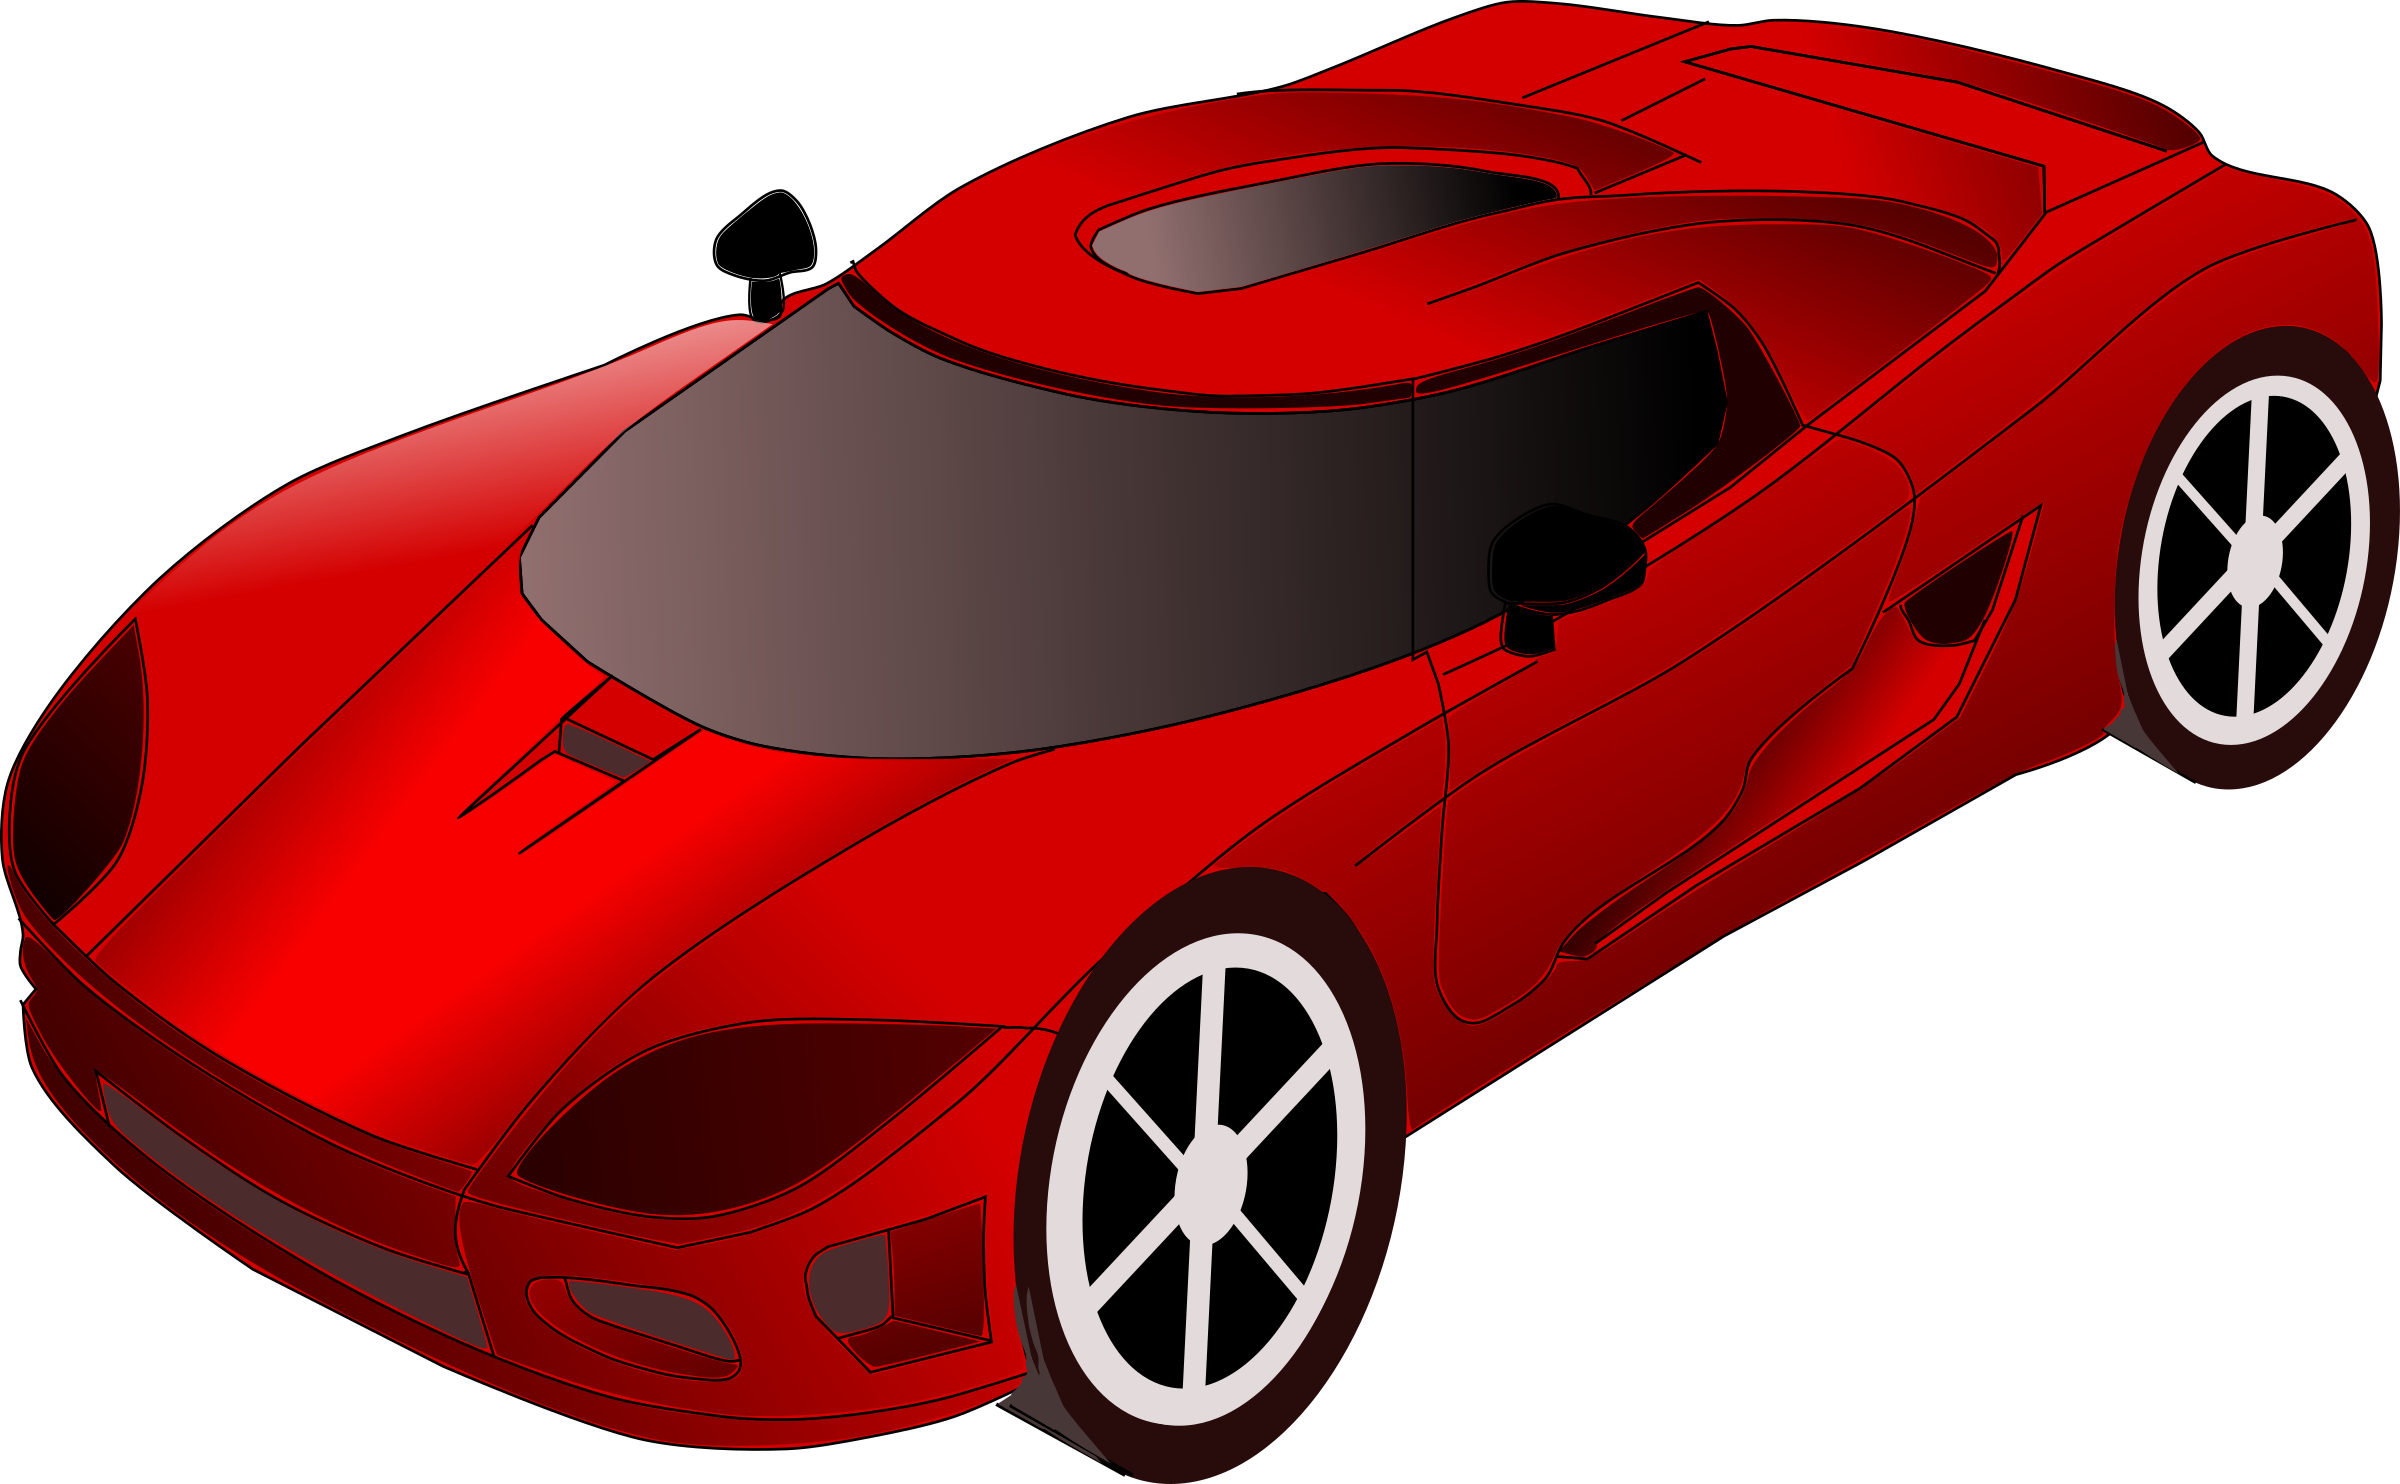 Car shows clipart banner freeuse library Car clipart high resolution - ClipartFox banner freeuse library